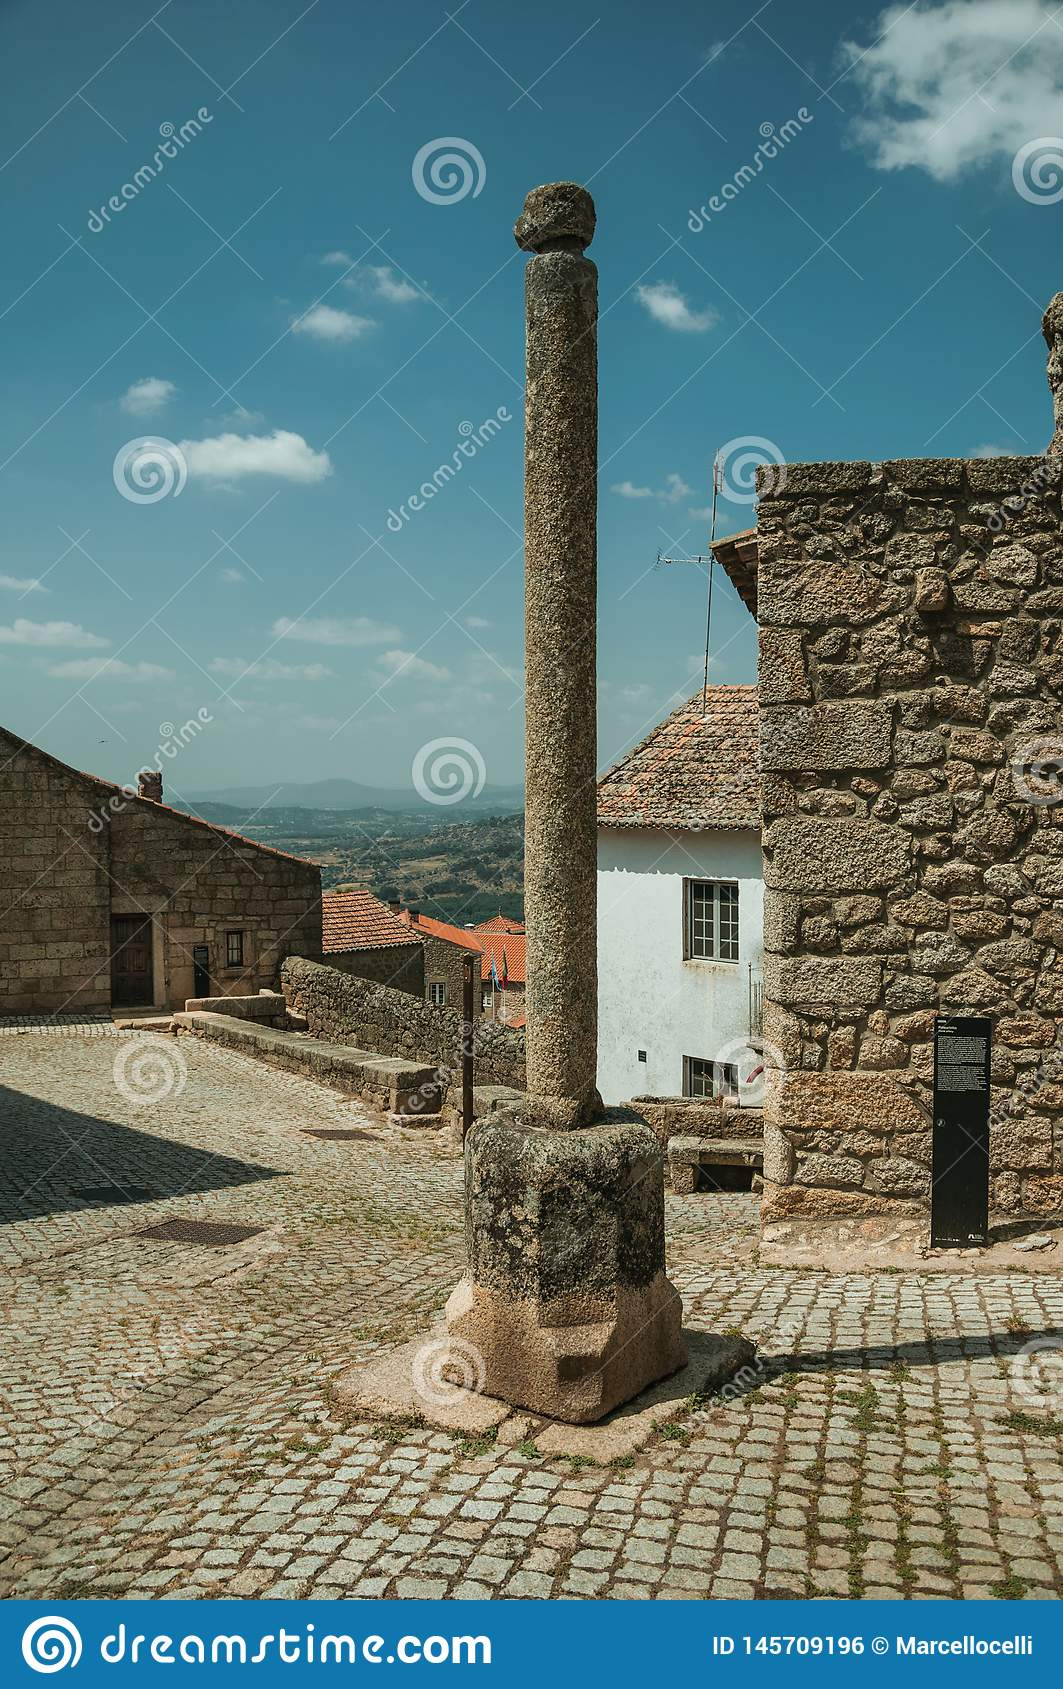 Stone pillory in front of old stone houses at Monsanto